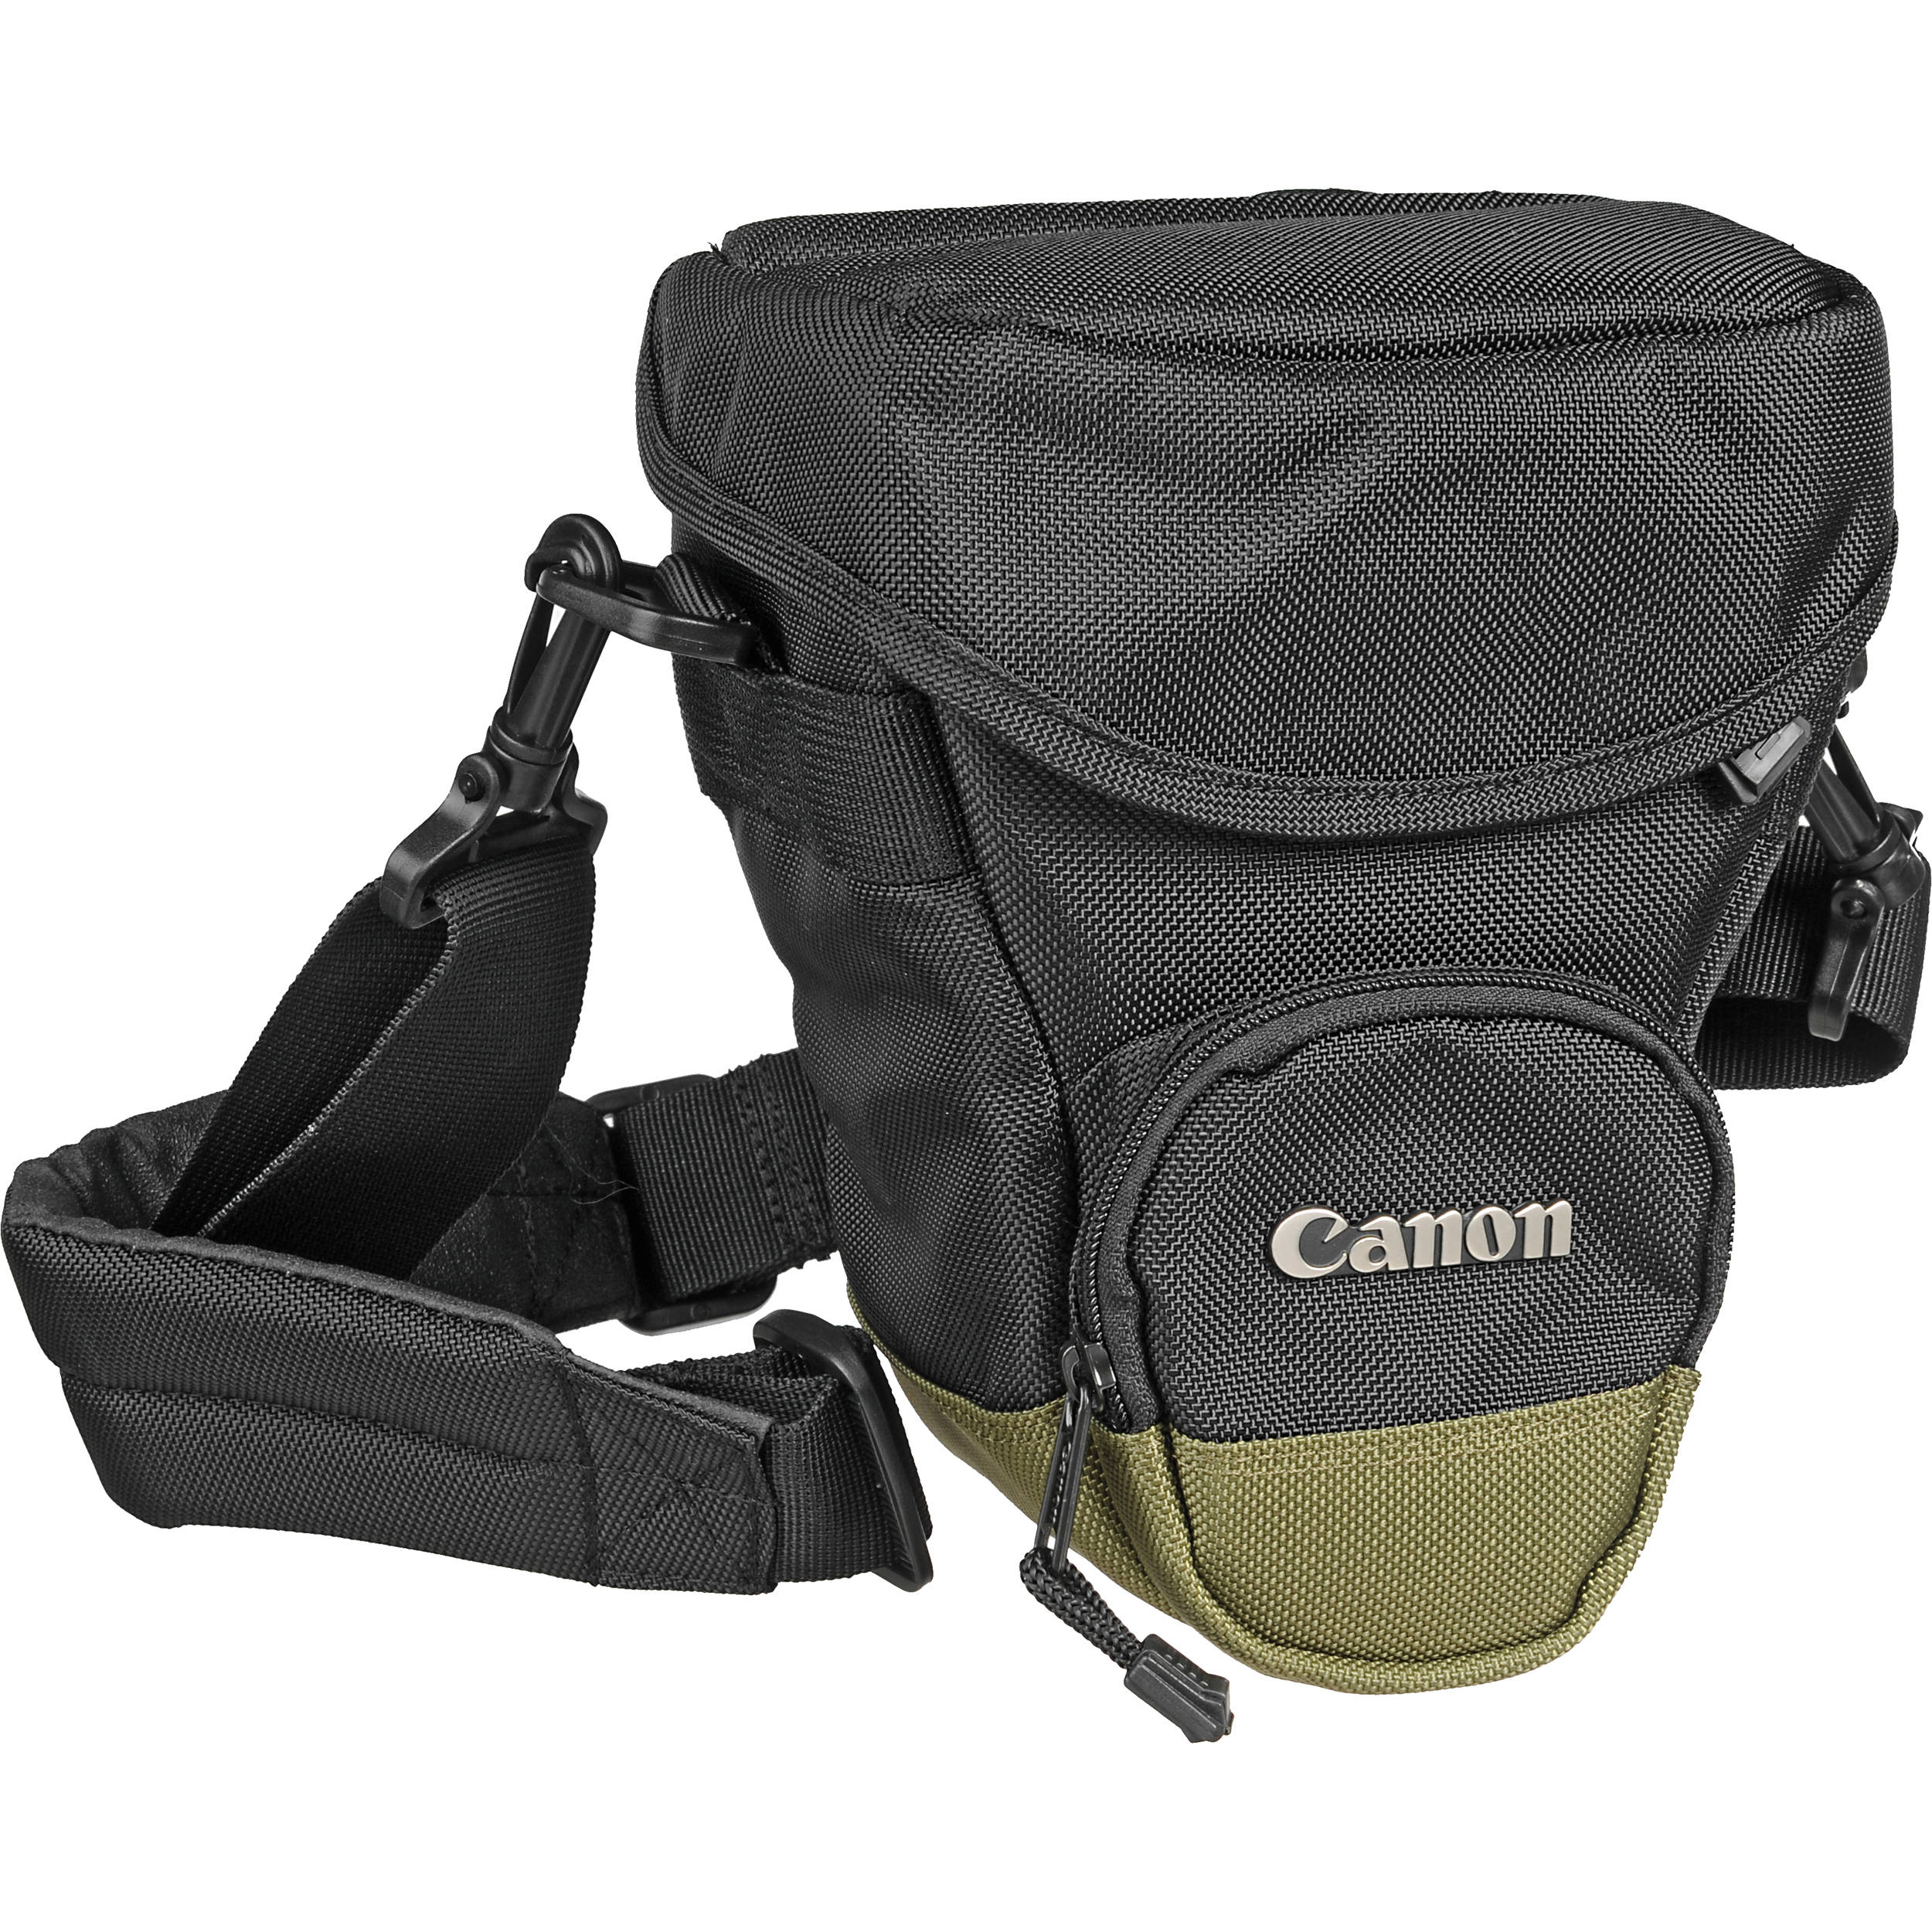 Canon Zoom Pack 1000 Holster Style Bag Black Olive Green Trim